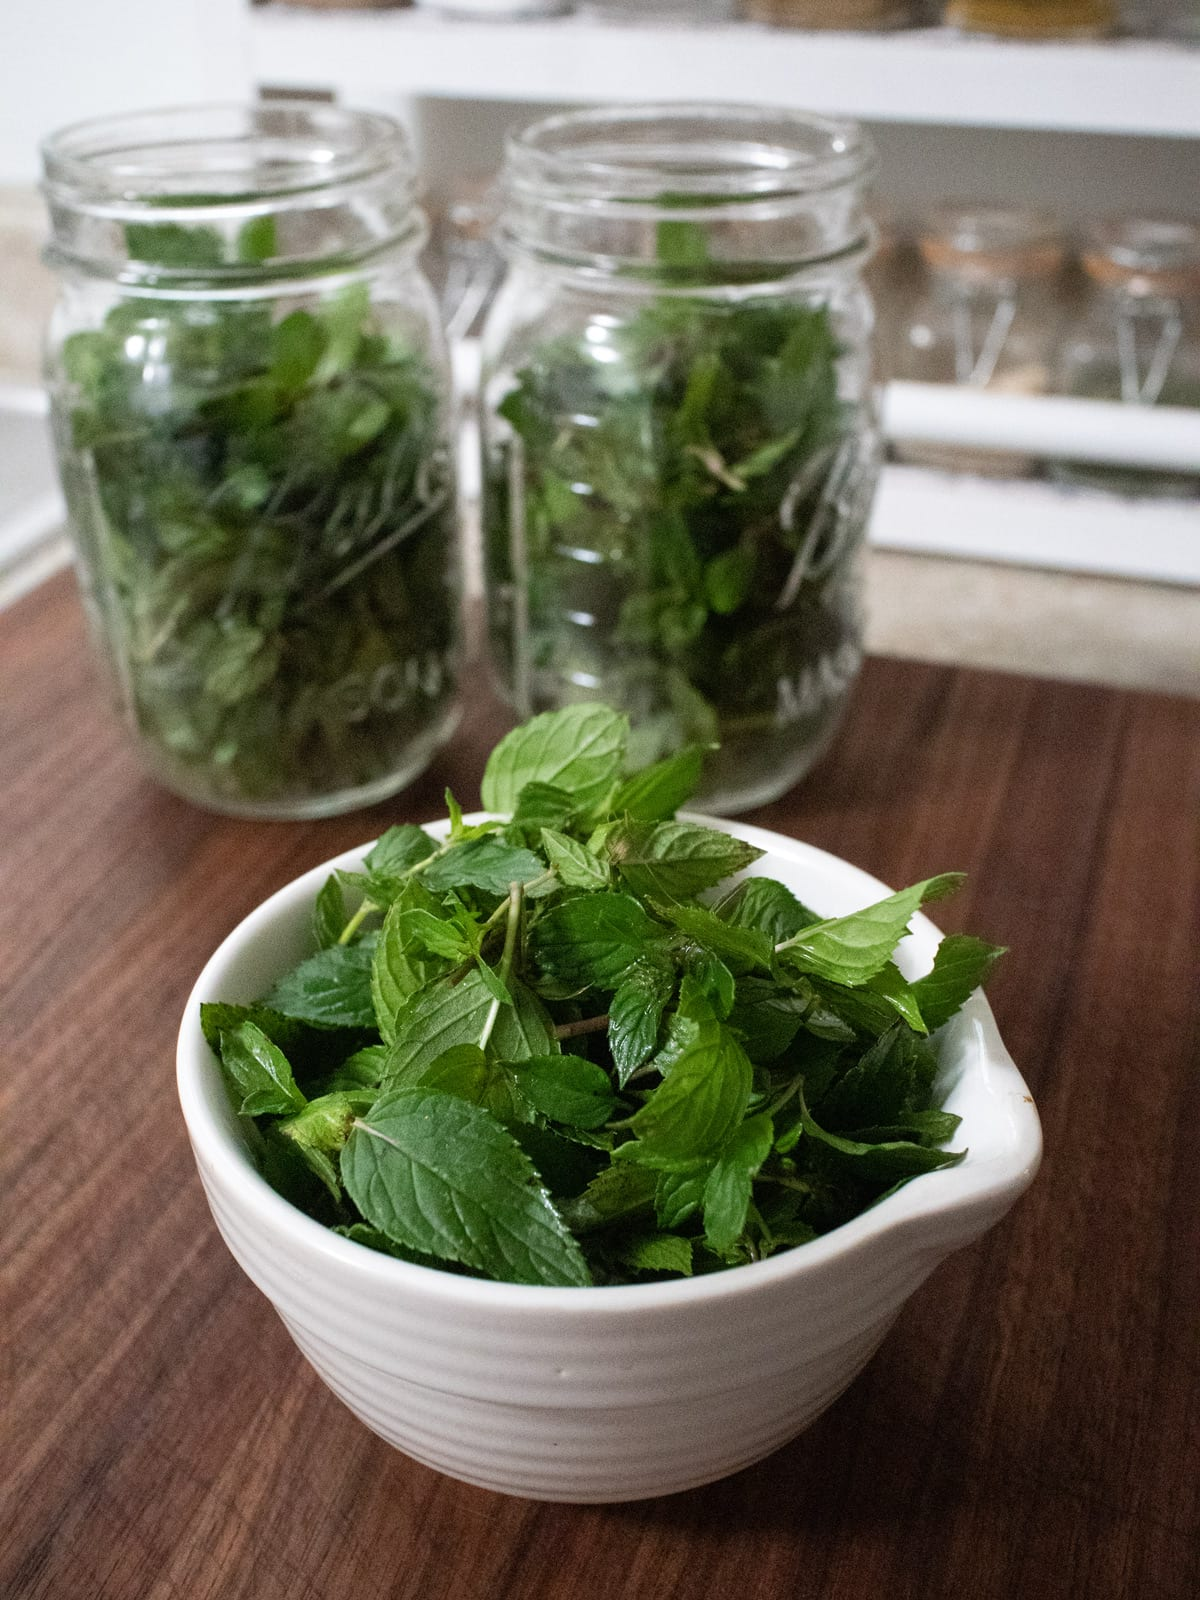 measuring the mint leaves